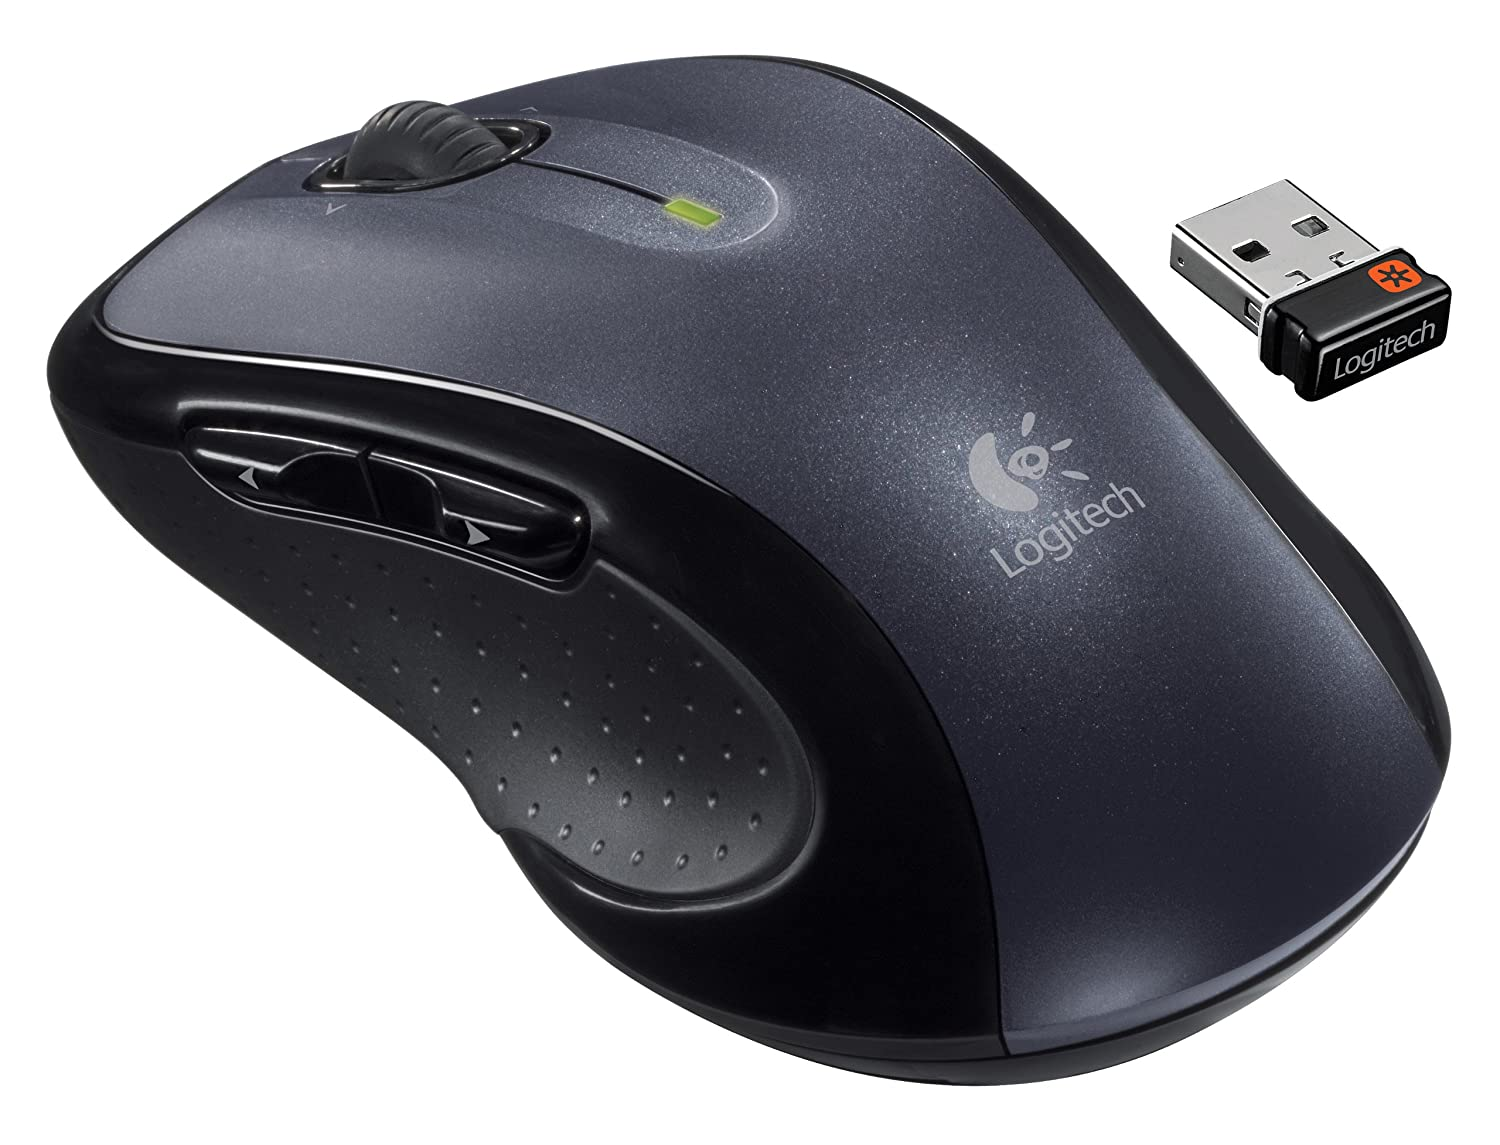 Logitech M510 Wireless Mouse $19.99